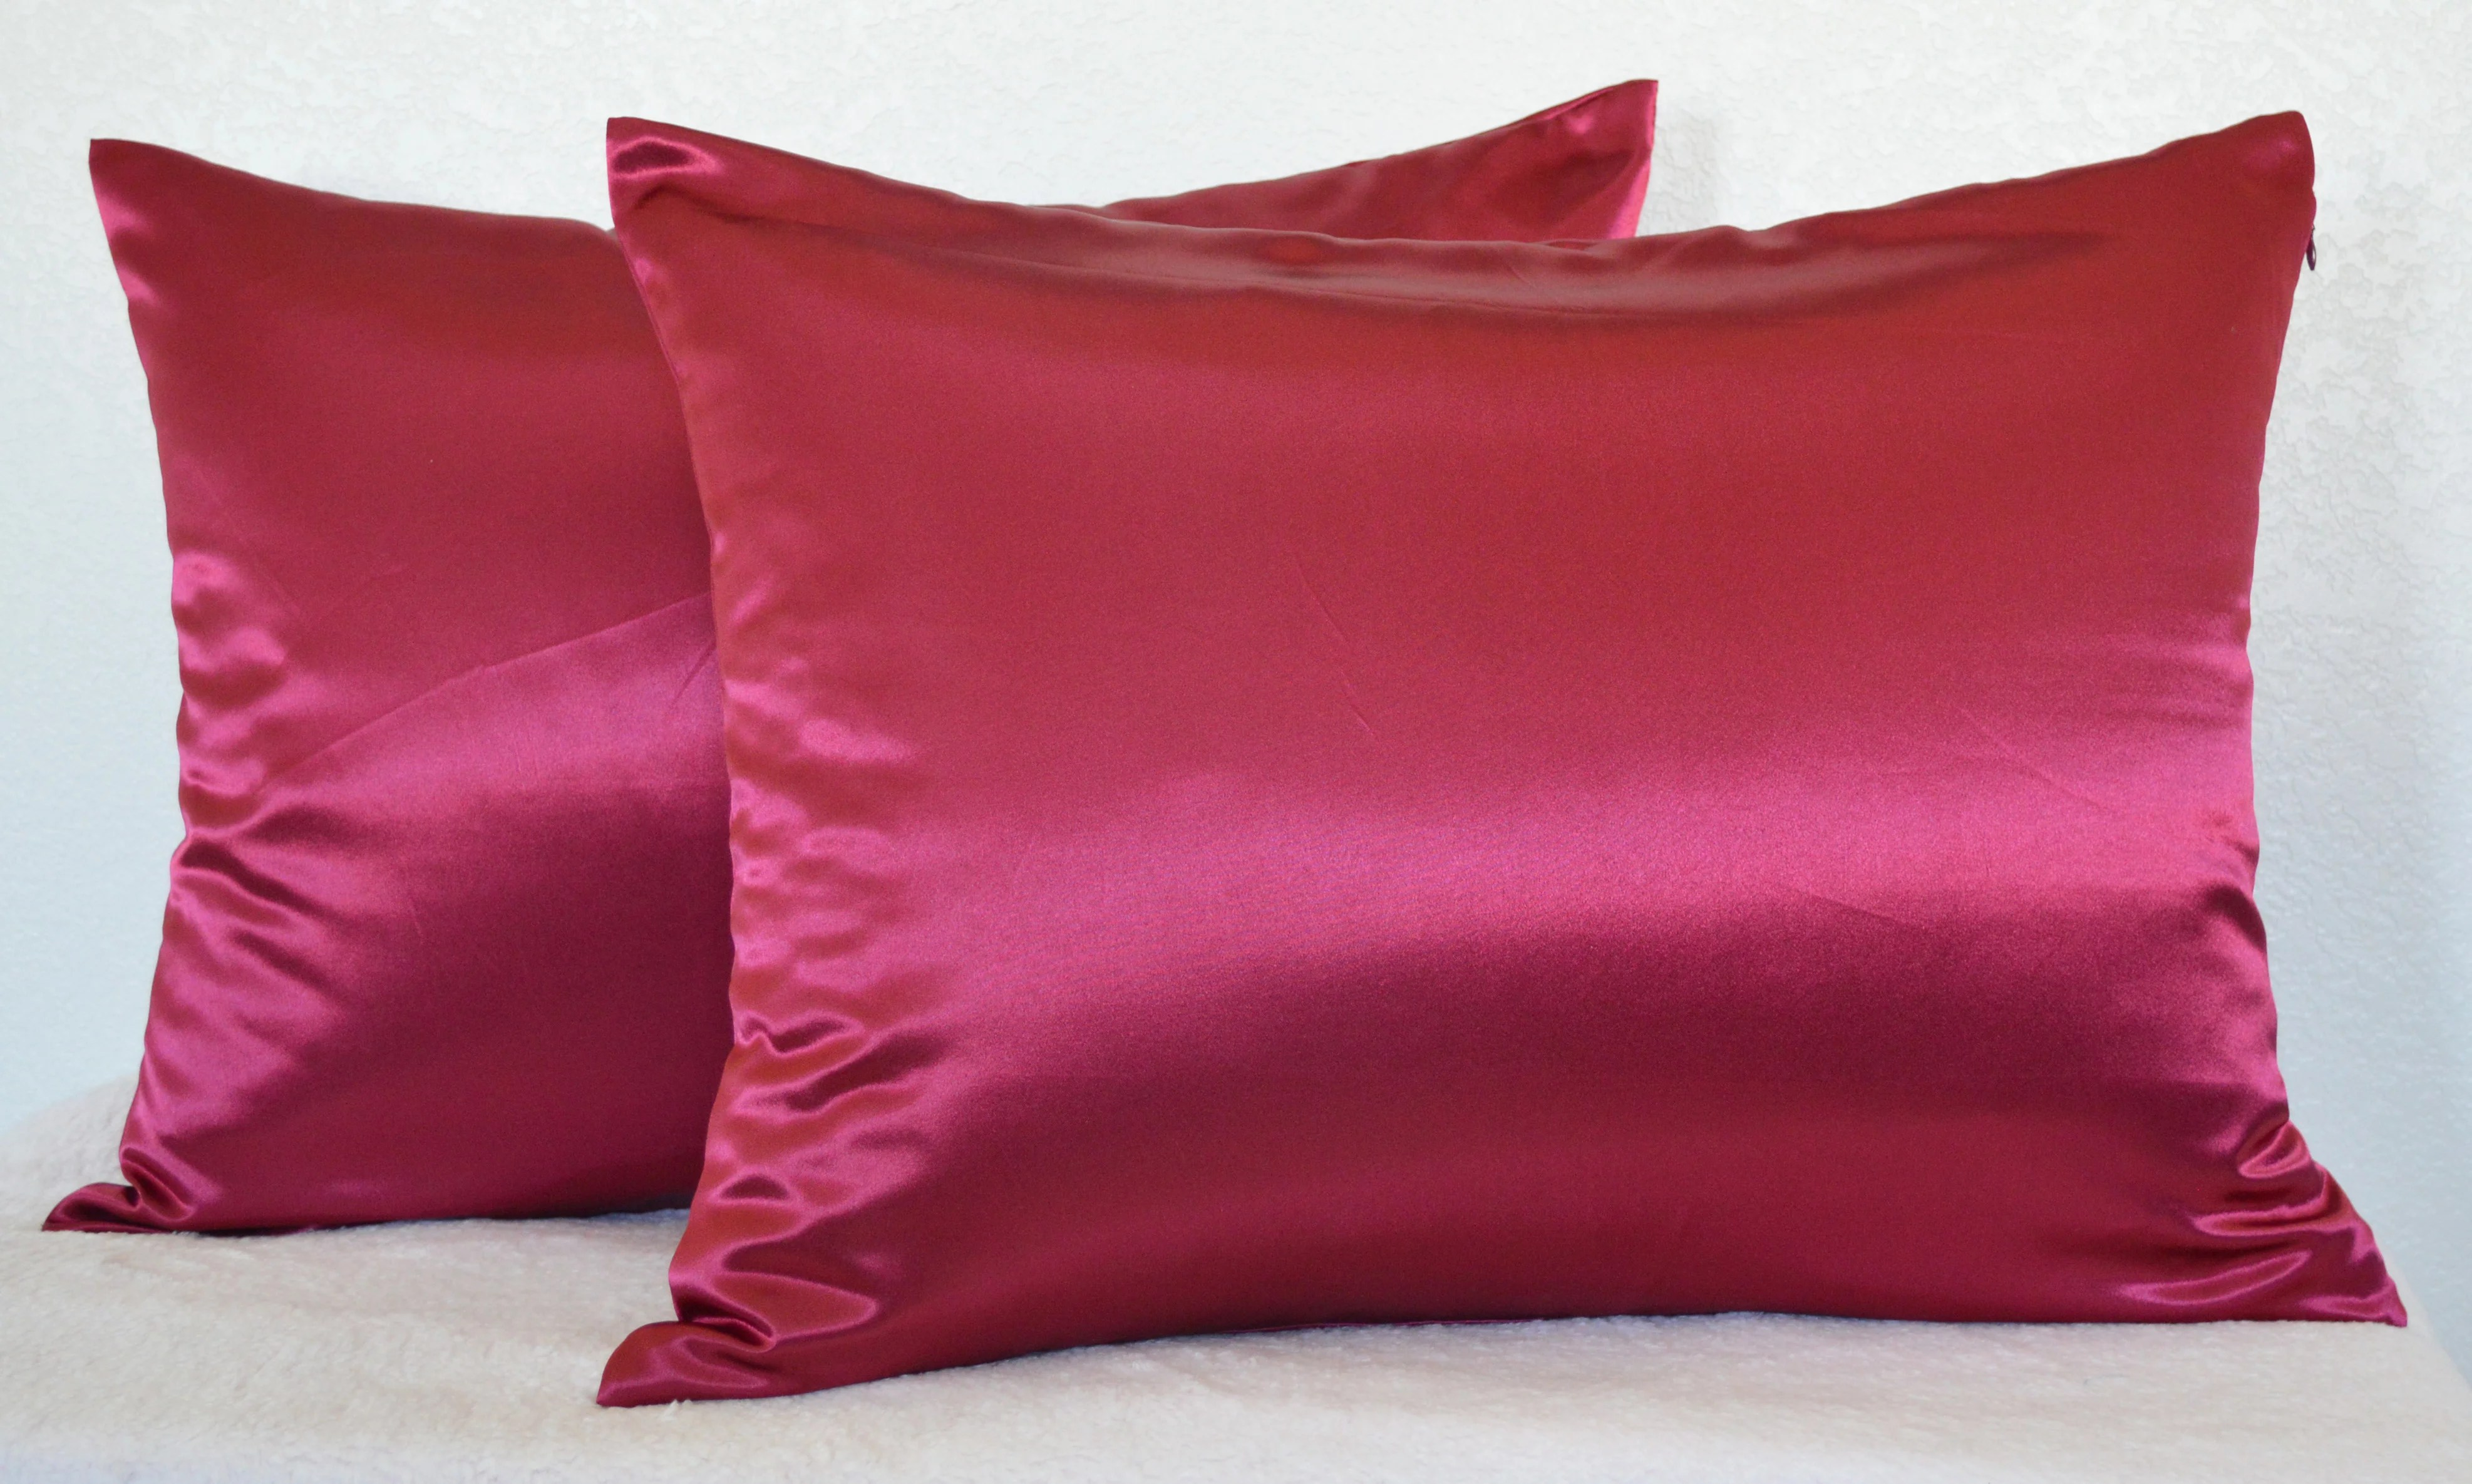 Satin Pillowcases With Zipper Aiking Home 350tc Bridal Satin Pillow Cases Zipper Closure Pack Of 2 Size 20 X26 Standard Burgundy